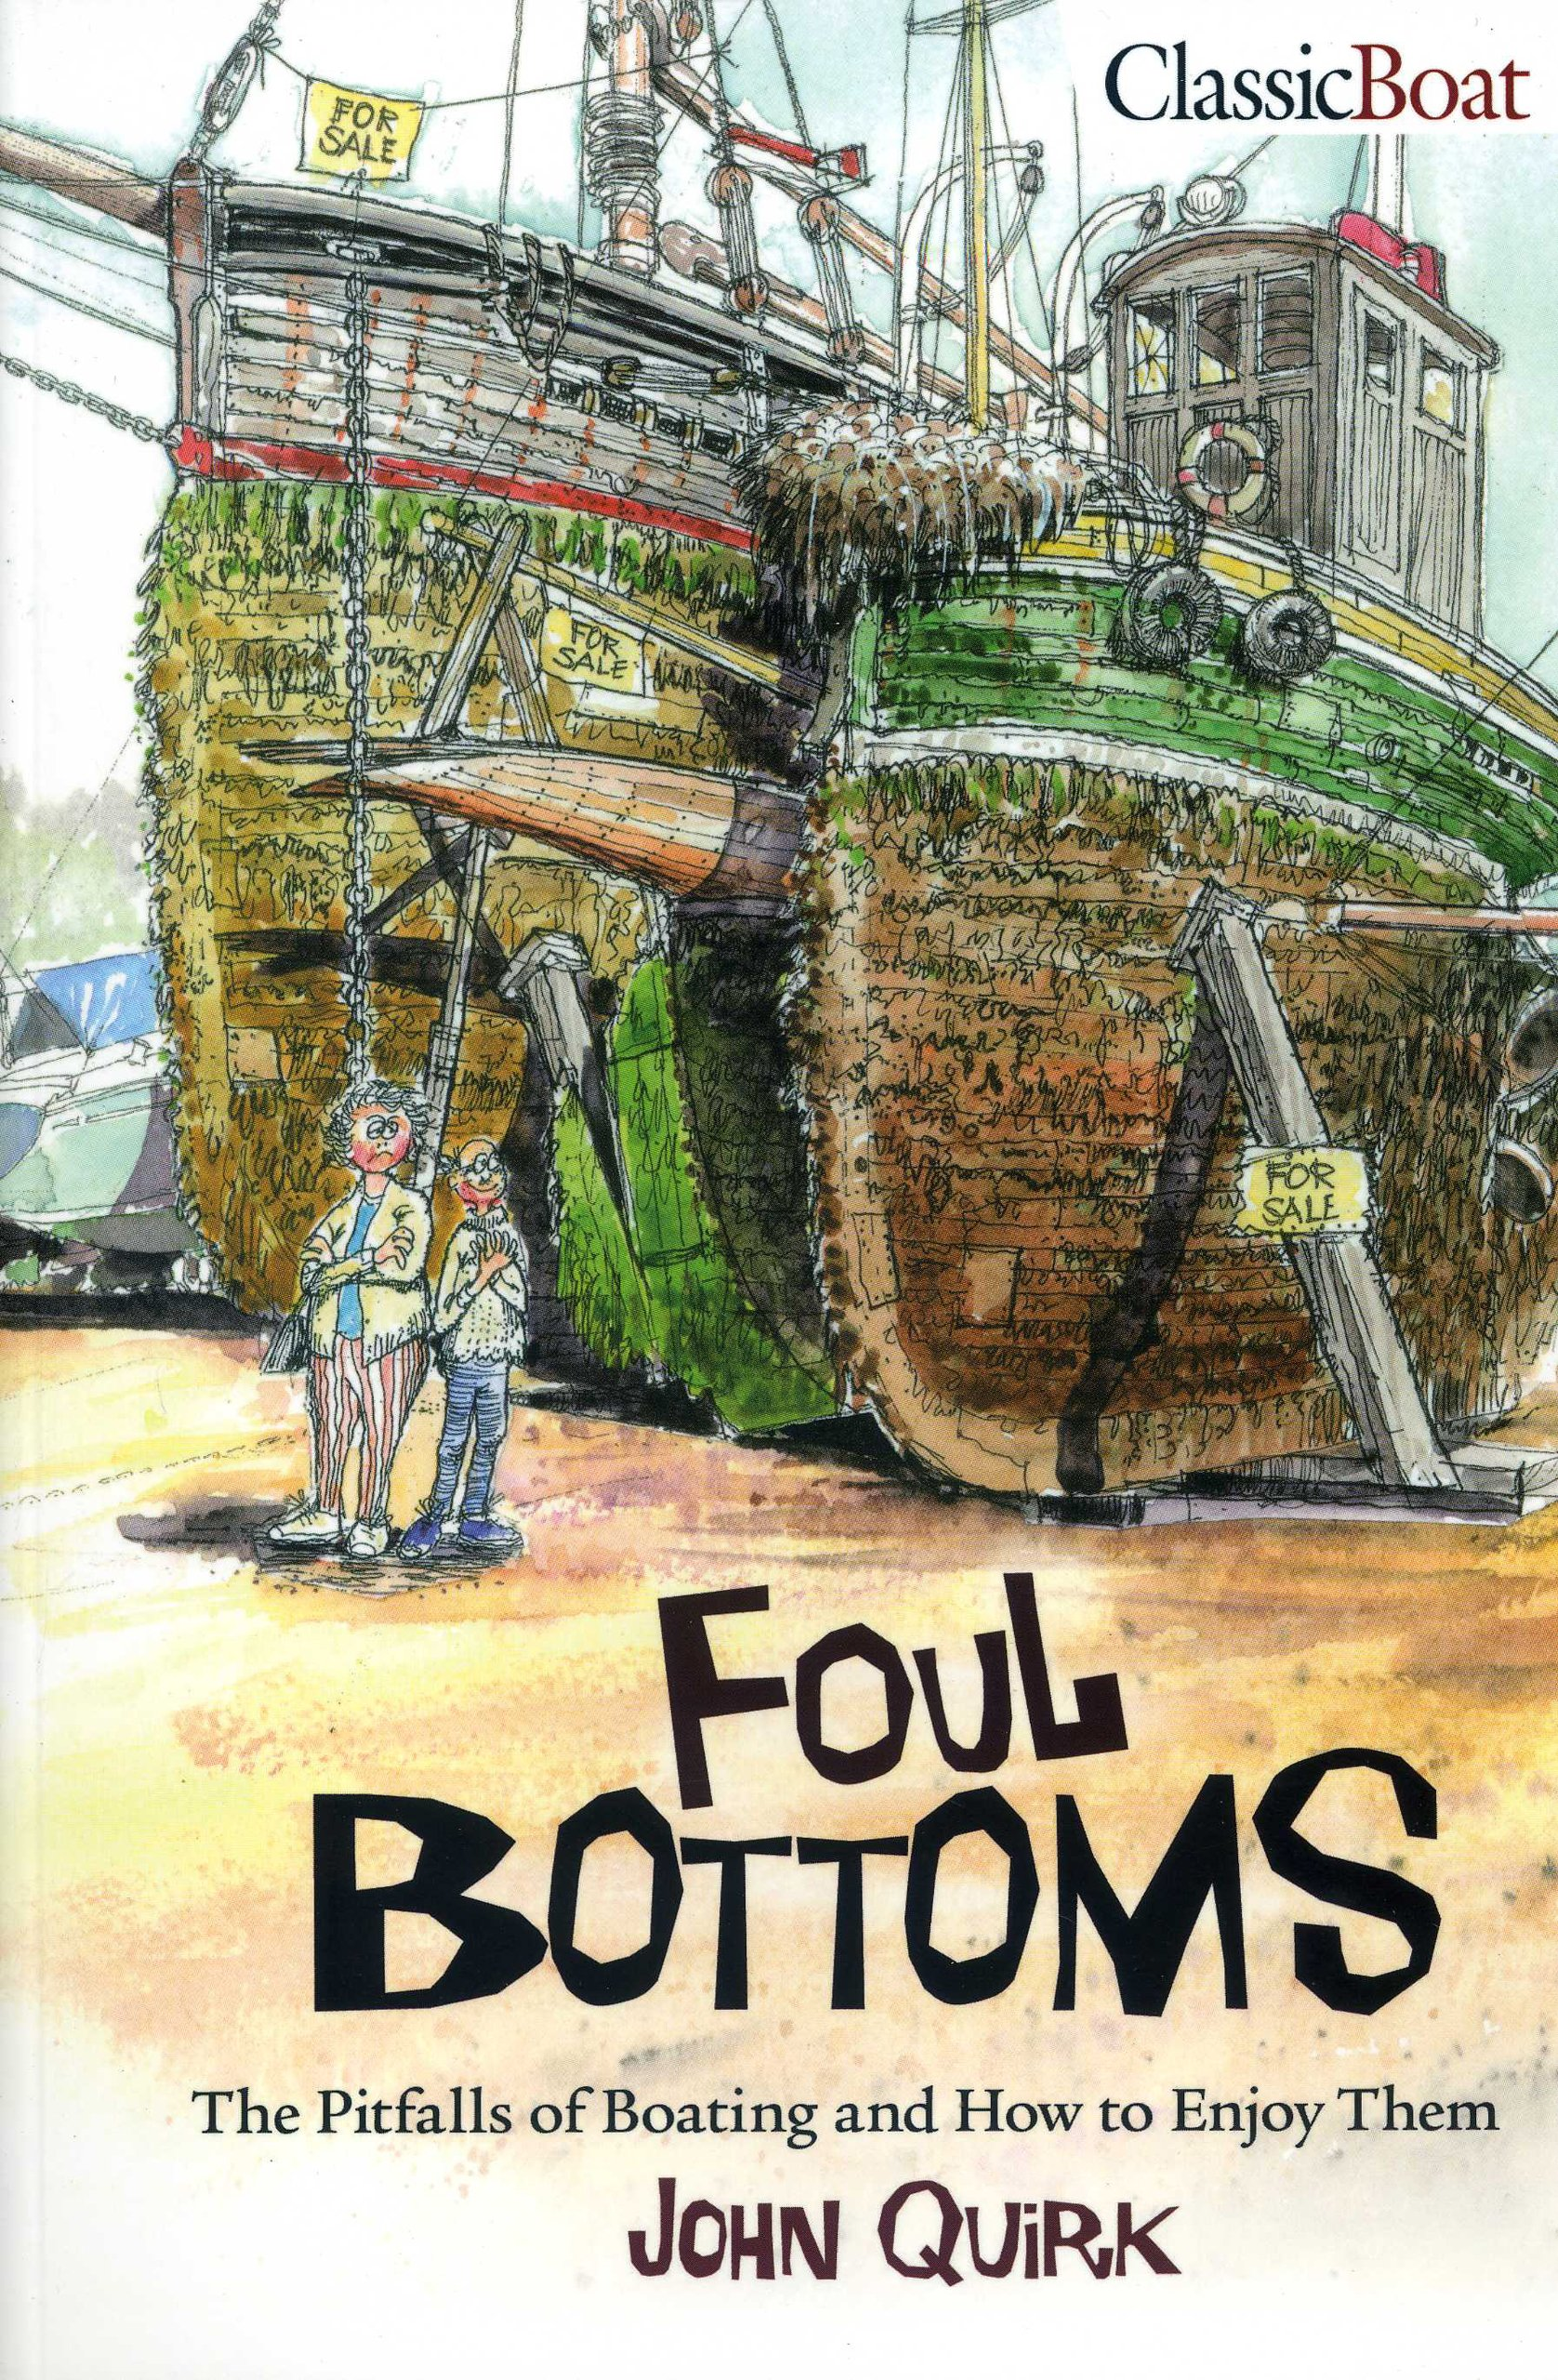 Foul Bottoms: The Pitfalls of Boating and how to Enjoy Them PDF